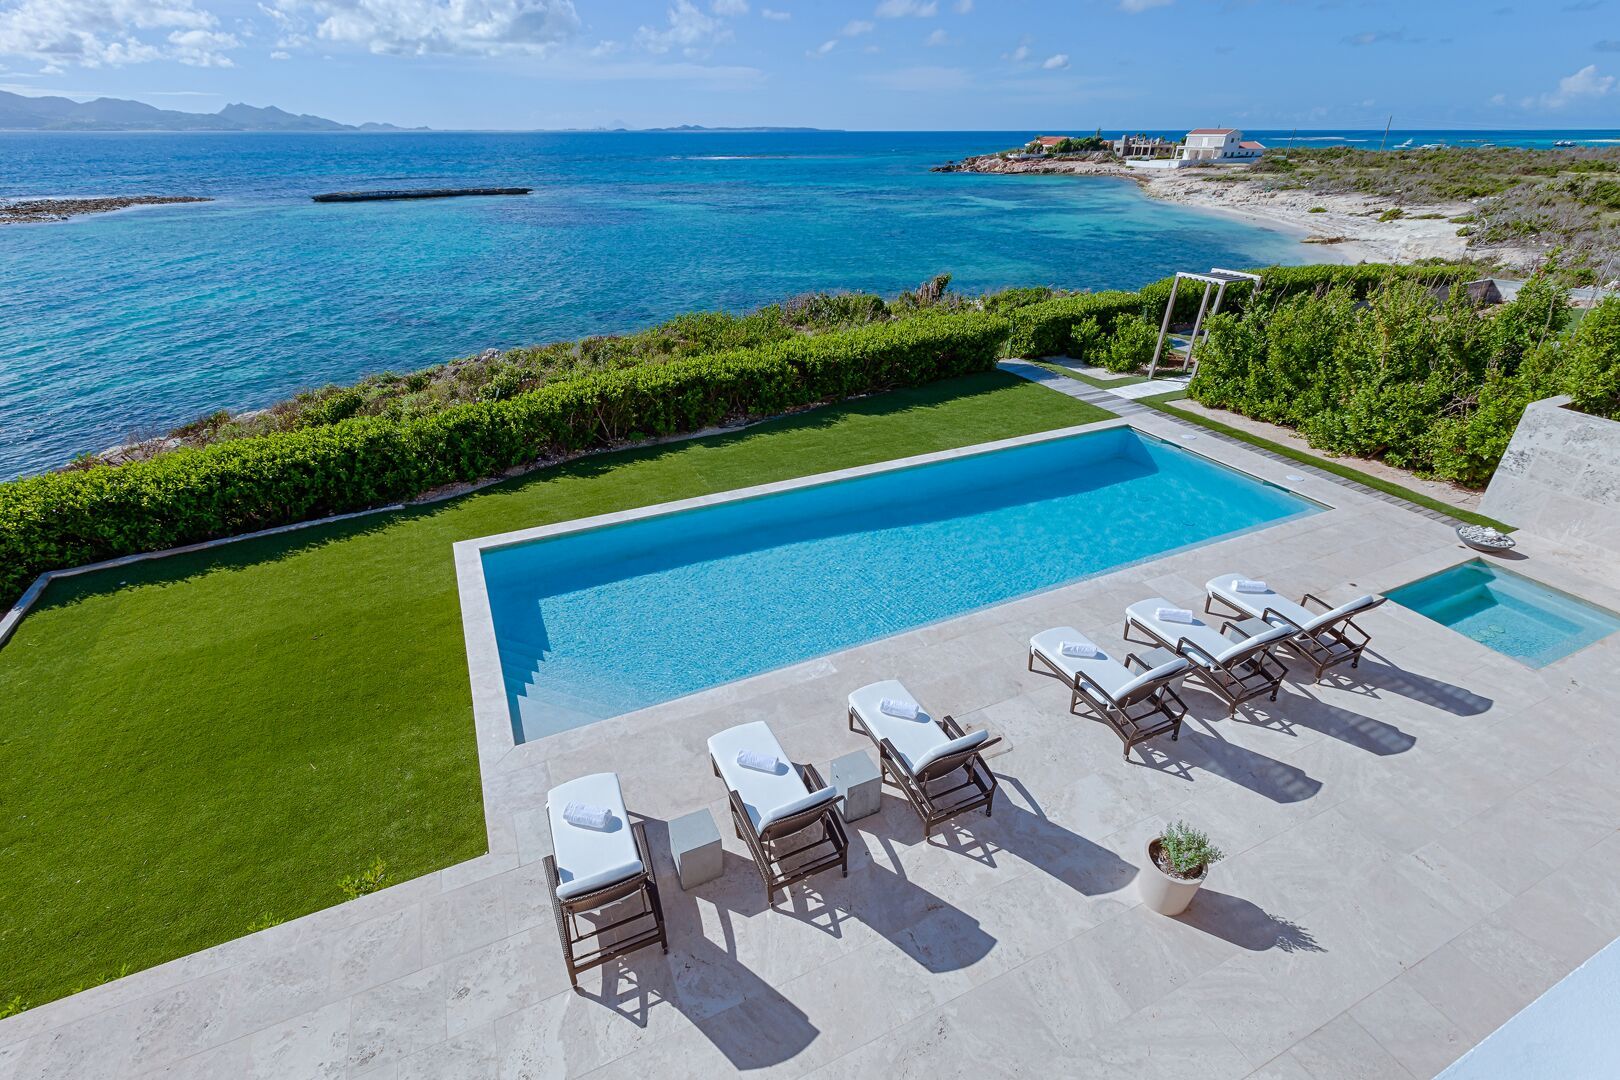 Anguilla Villa Beaches Edge New Pool on Ocean